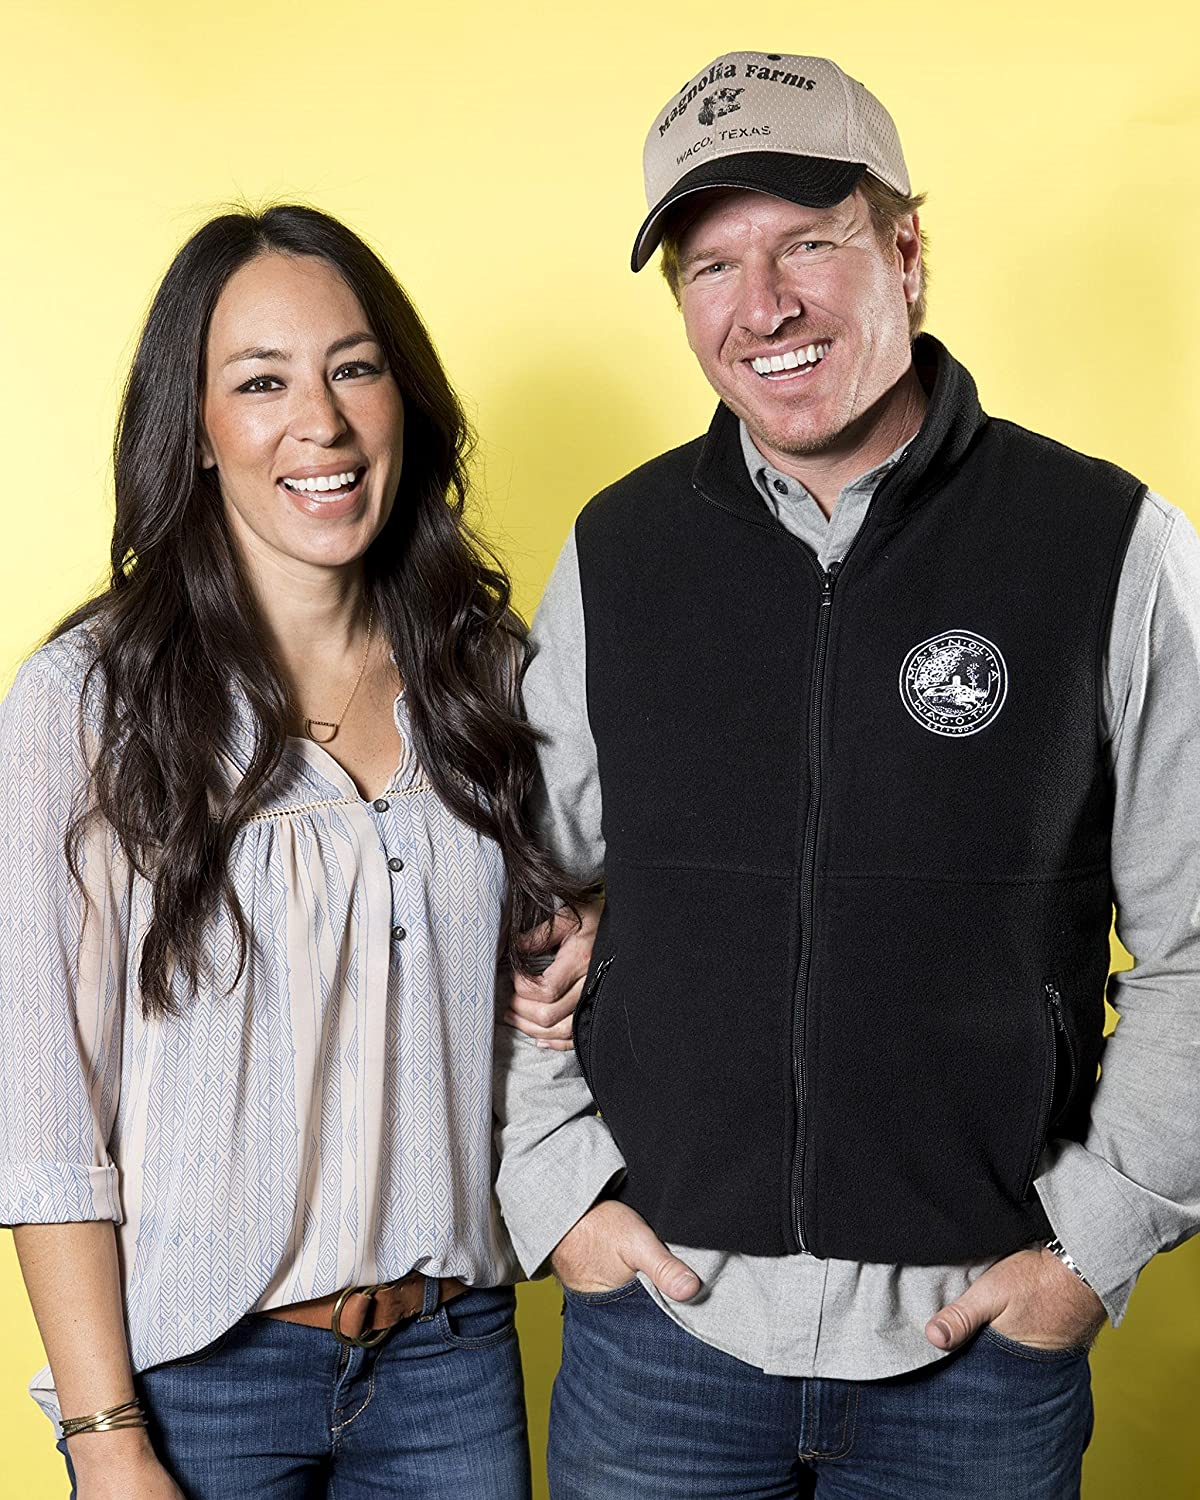 Chip & Joanna Gaines/Fixer Upper 8 x 10/8x10 GLOSSY Photo Picture